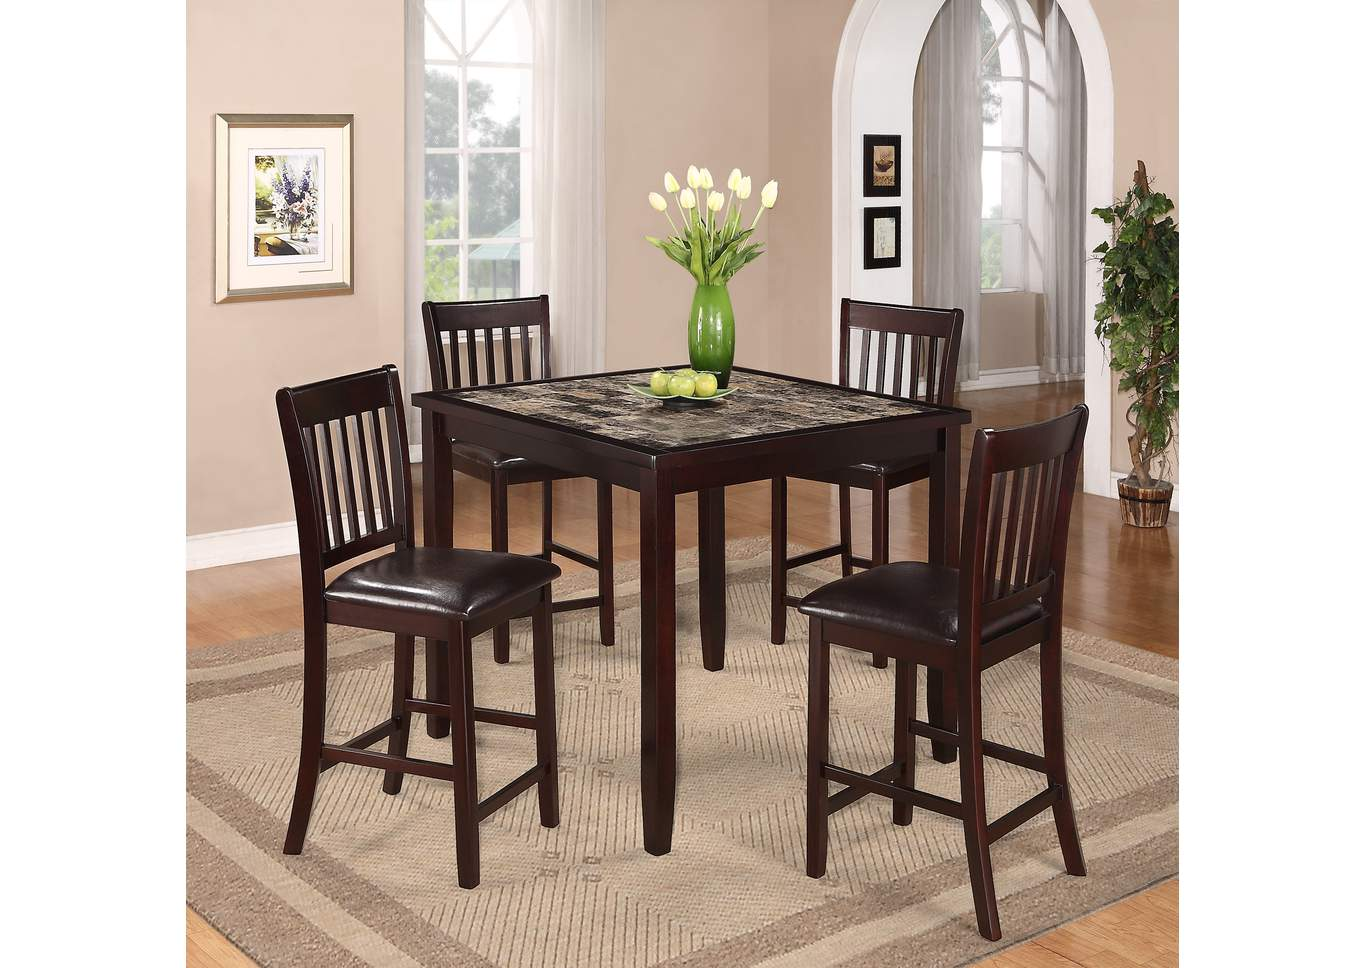 Cascade Counter Height Dining Room Table w/4 Counter Height Chairs,Crown Mark